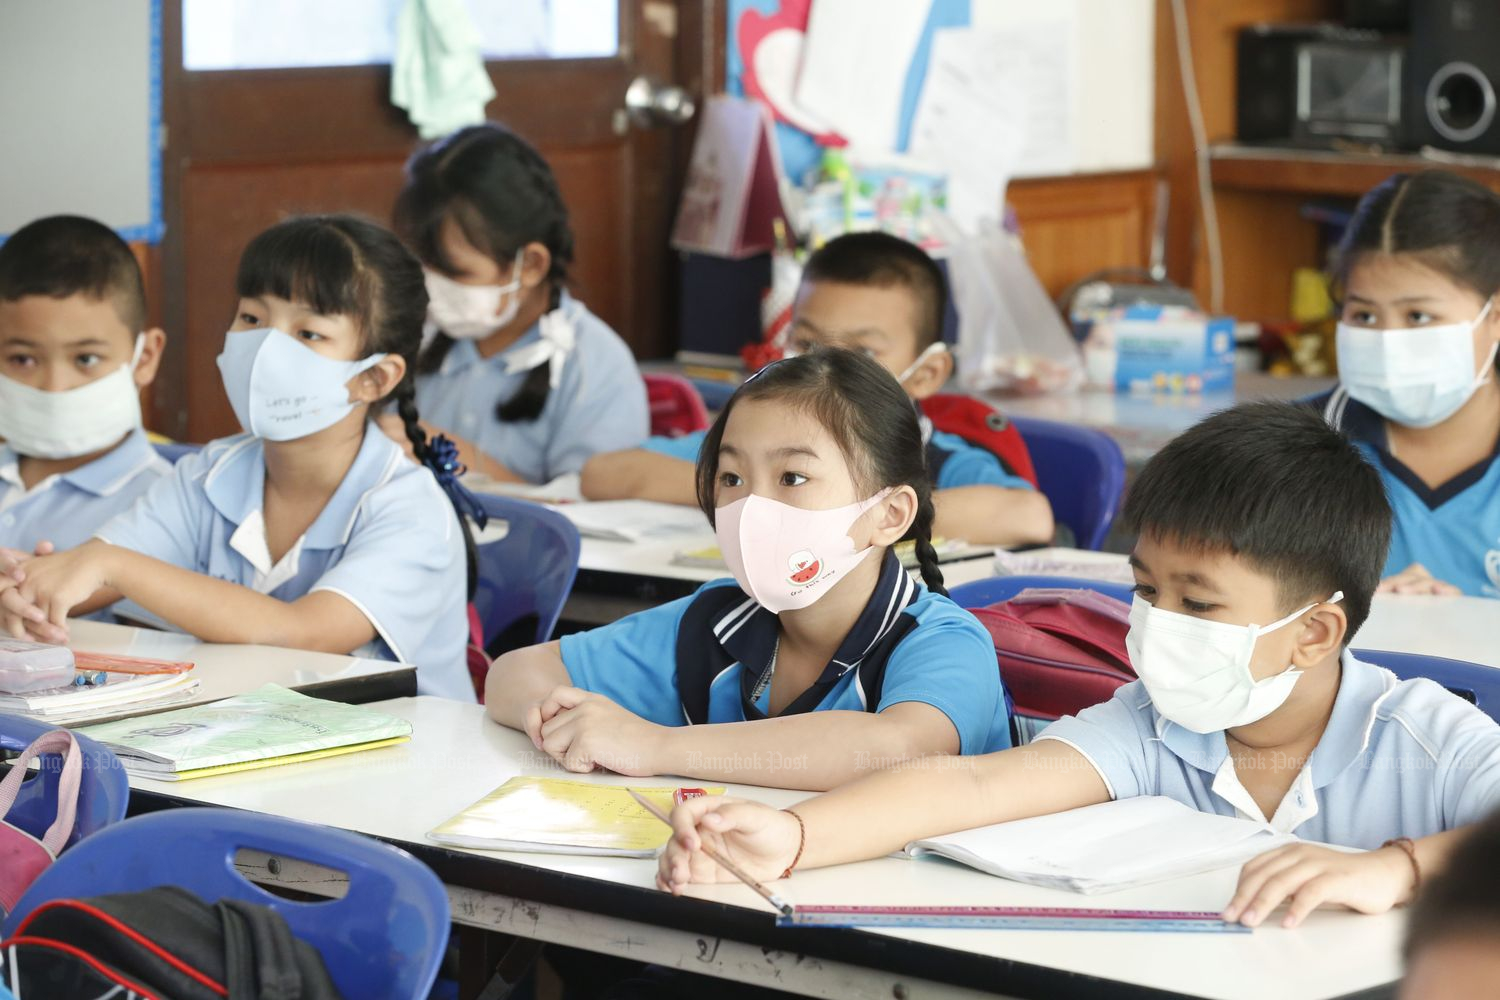 Students in a classroom at Kullawan School in Bangkok on Jan 27. More assistant teachers are needed as classrooms will be split, according to the Education Ministry. (Photo by Pornprom Satrabhaya)